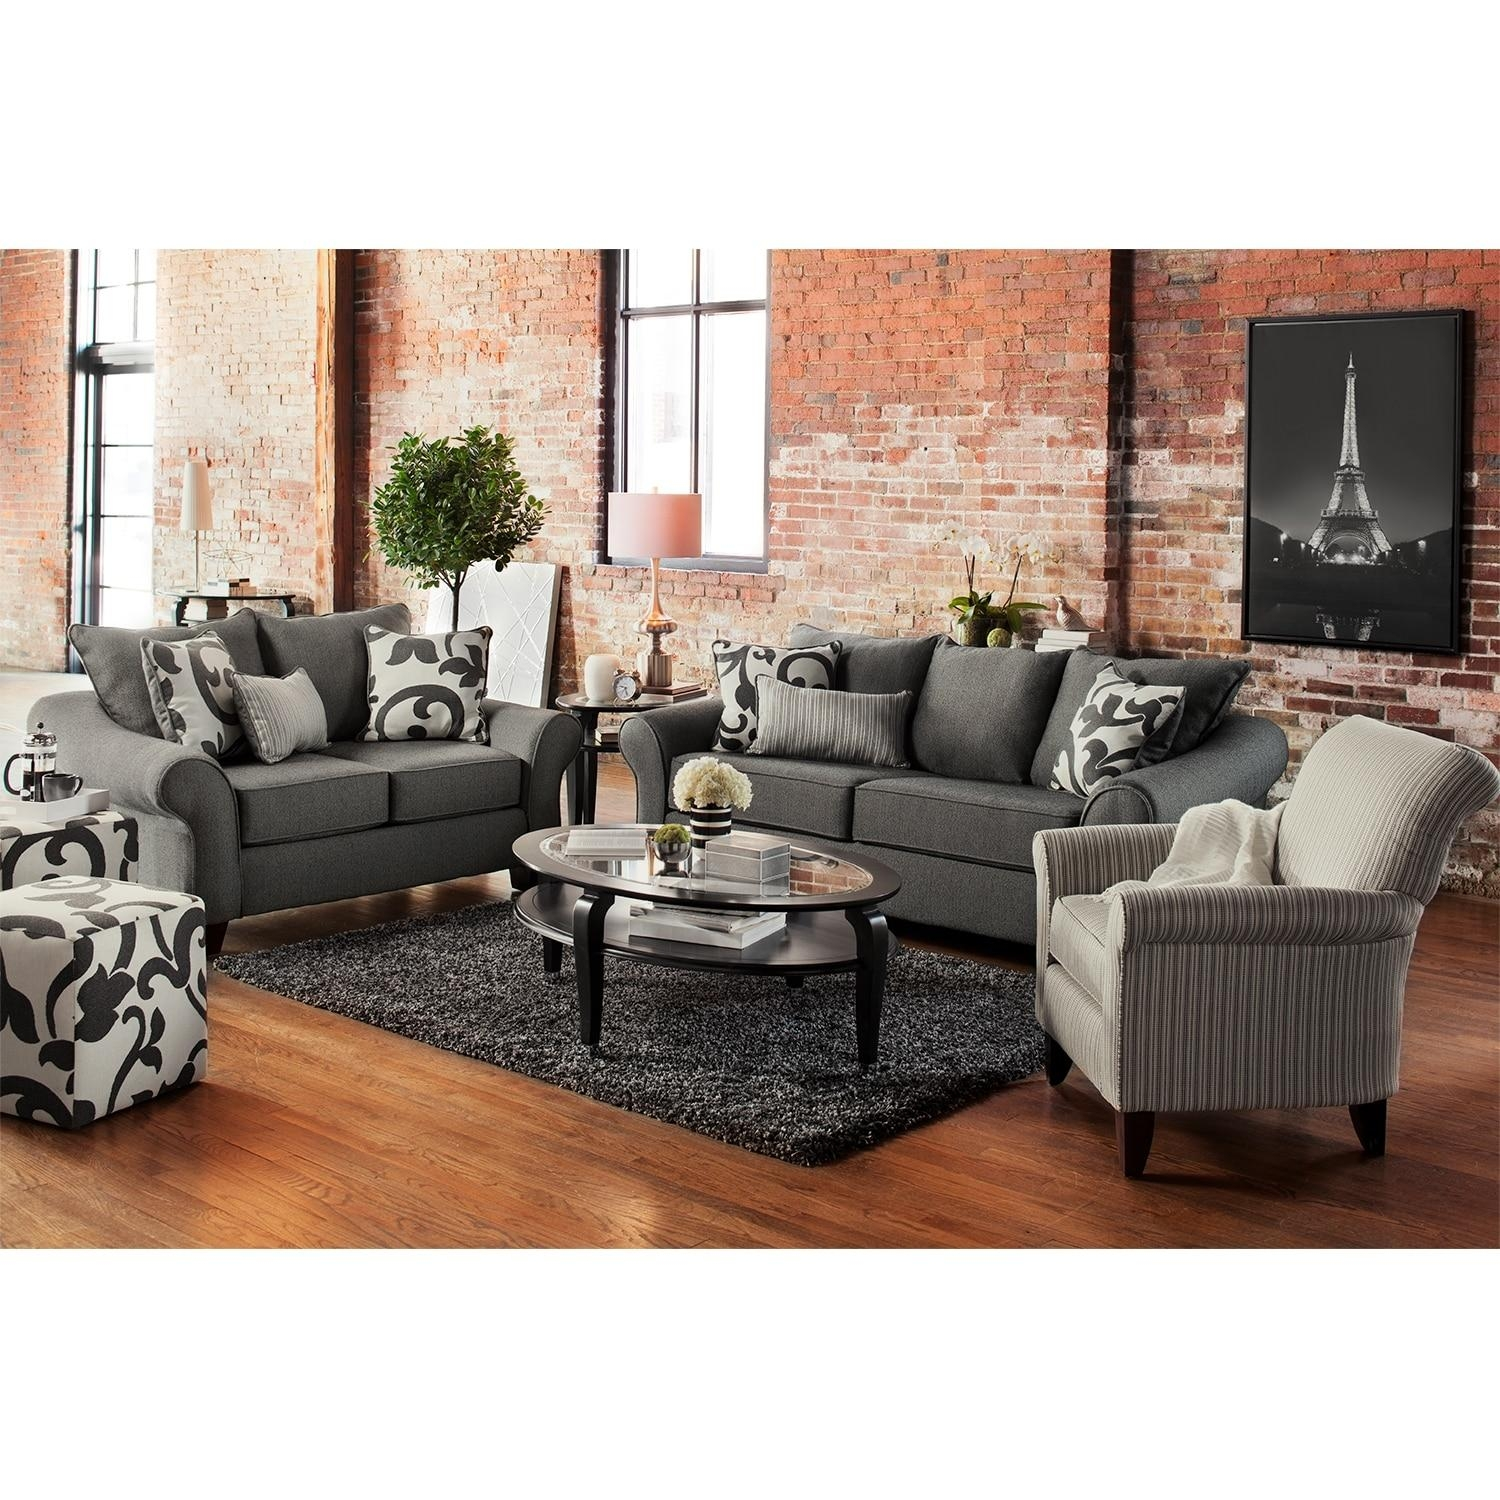 Colette Sofa, Loveseat And Accent Chair Set – Gray | American For Sofa Loveseat And Chair Set (View 7 of 20)